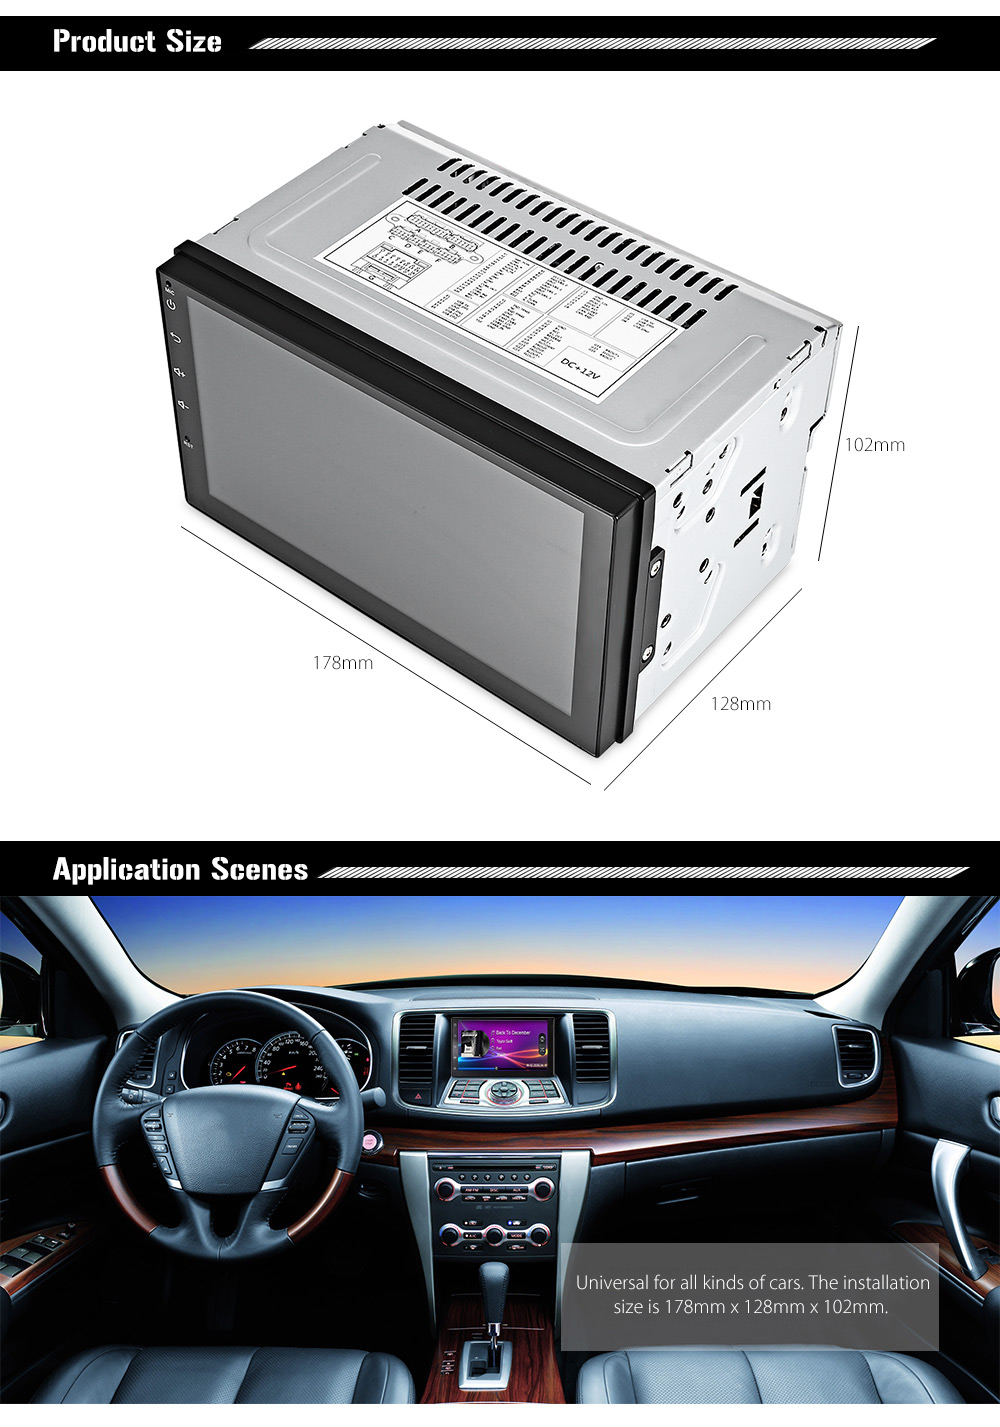 hight resolution of universal 7003 android 6 0 with bluetooth gps wifi car multimedia player 7 inch capacitive touch screen